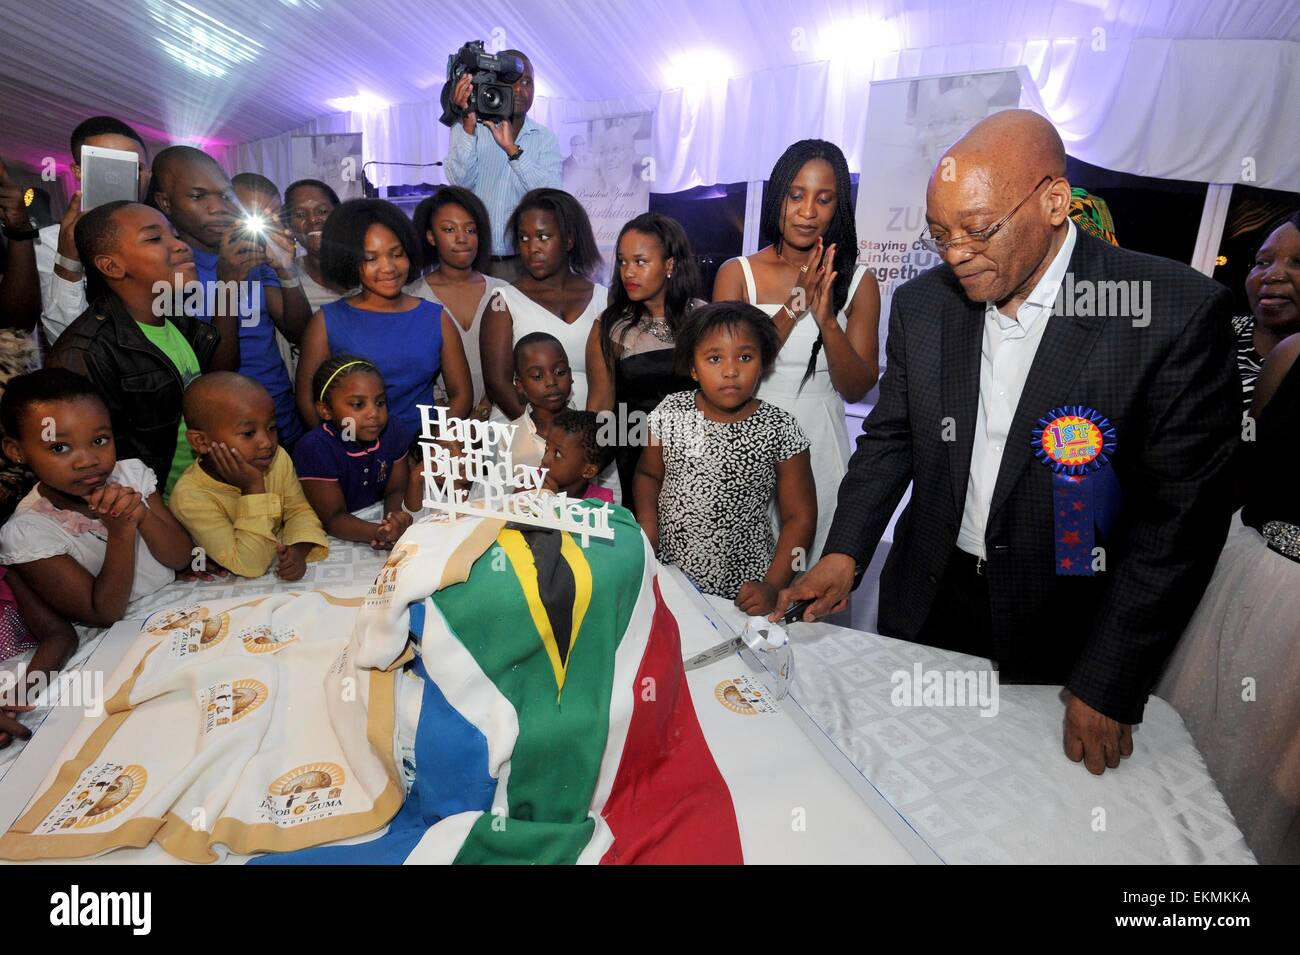 Durban, South Africa. 12th Apr, 2015. South Africa's President Jacob Zuma (1st R) tries to cut the birthday - Stock Image